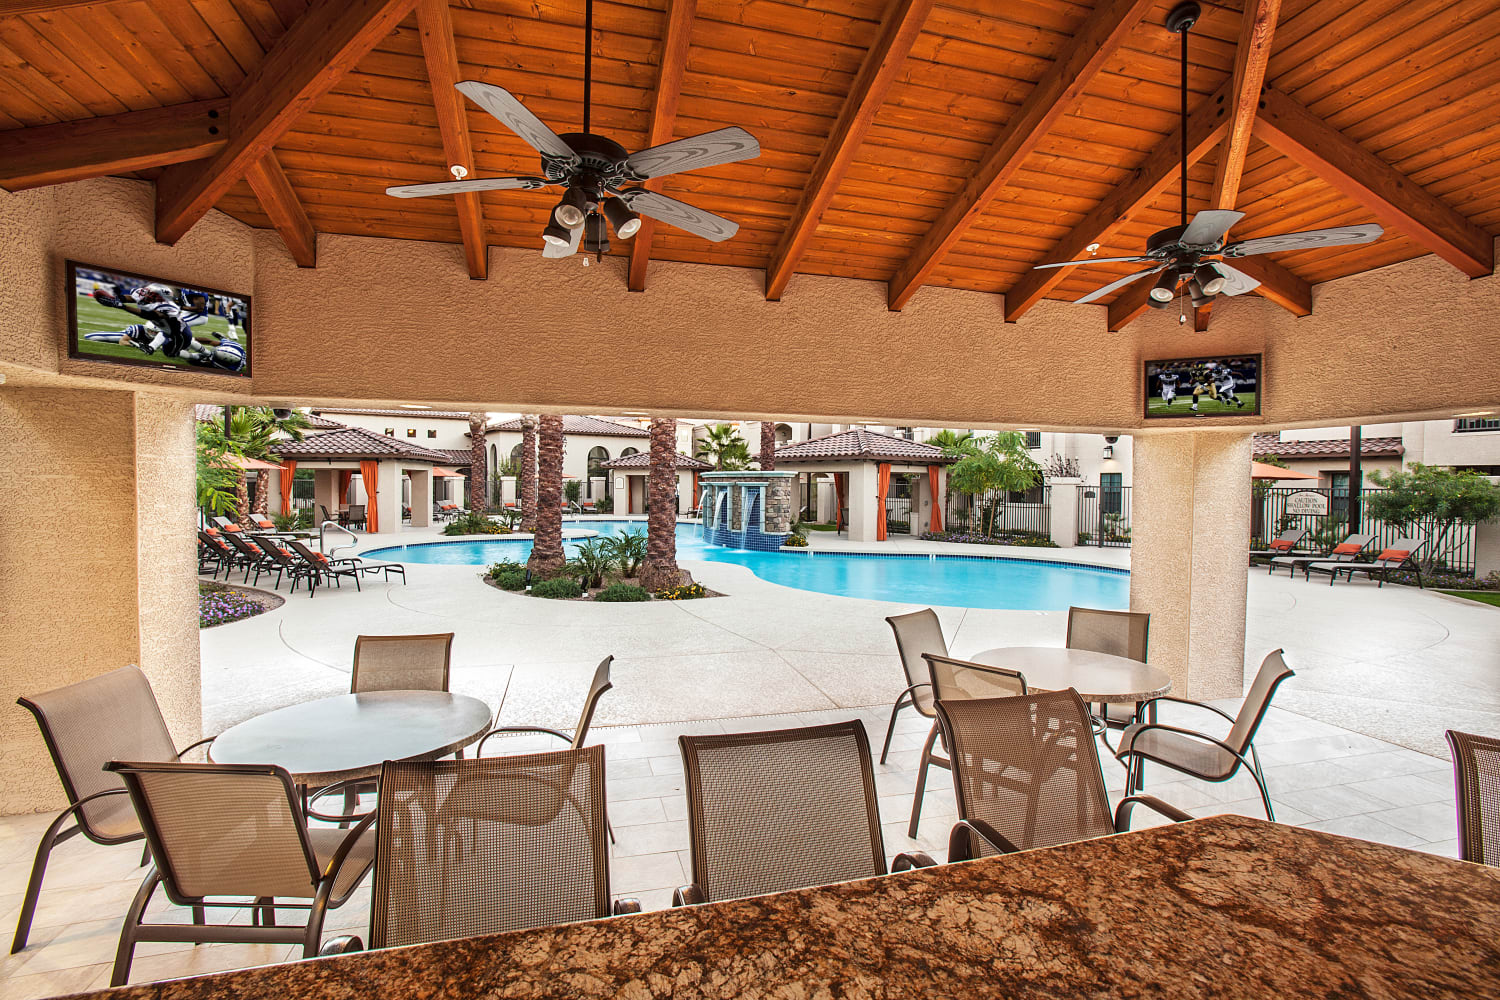 Hang out and relax in the poolside clubhouse at San Marquis in Tempe, Arizona